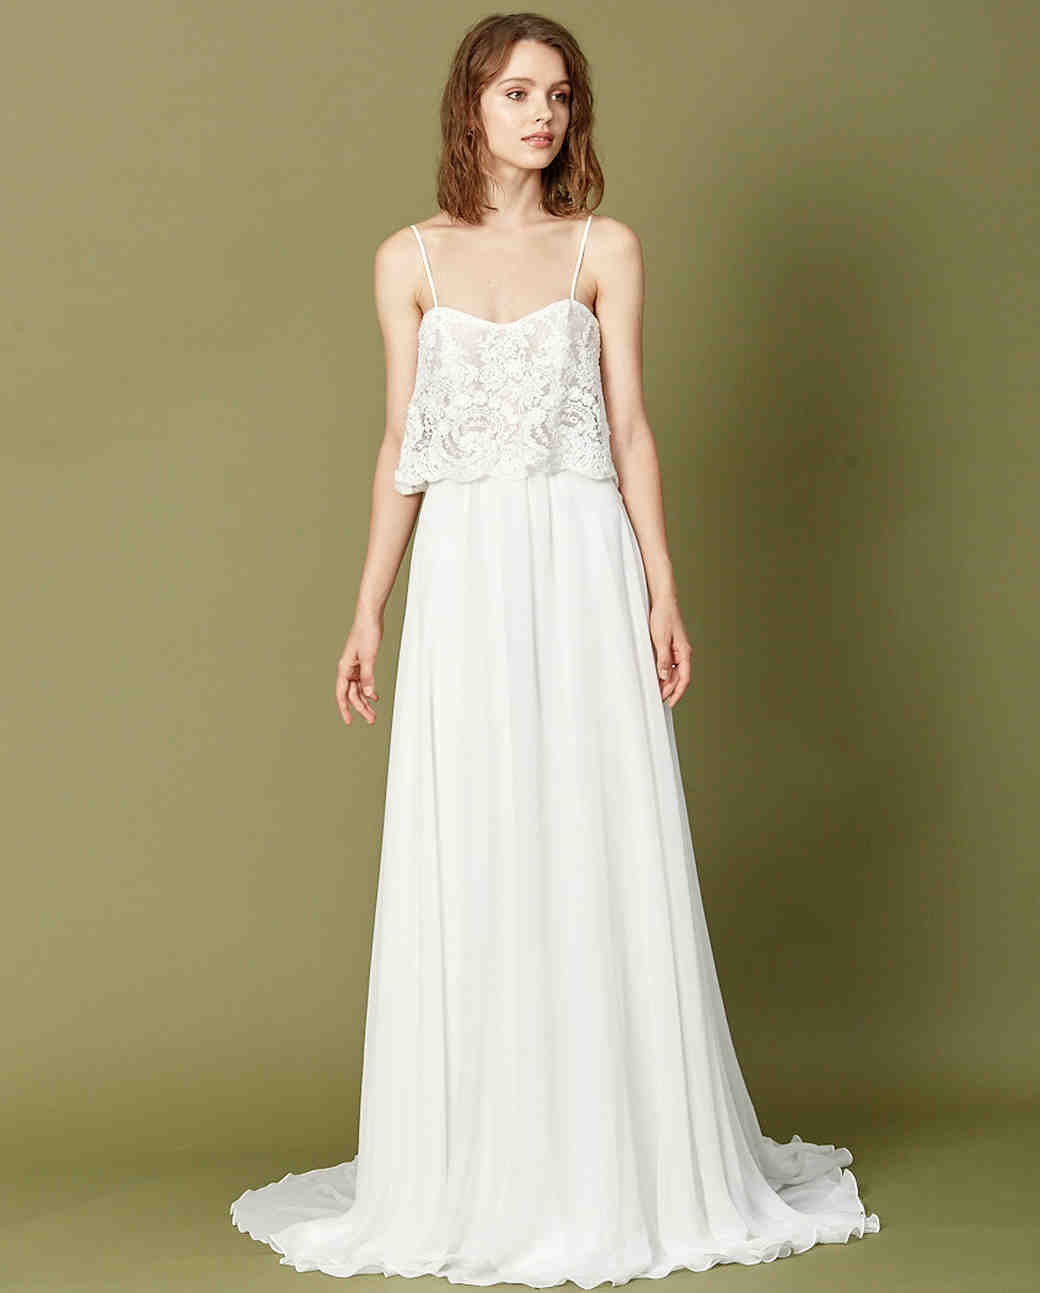 Fall Wedding Gown: Christos Fall 2017 Wedding Dress Collection